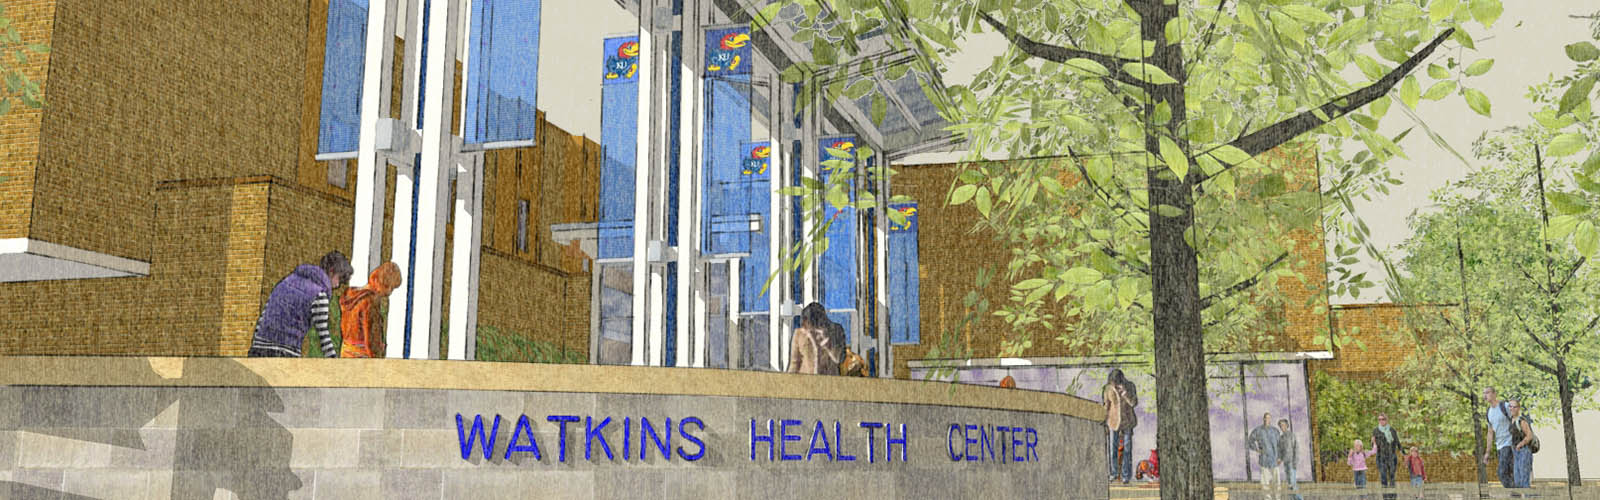 University of Kansas – Watkins Memorial Health Center